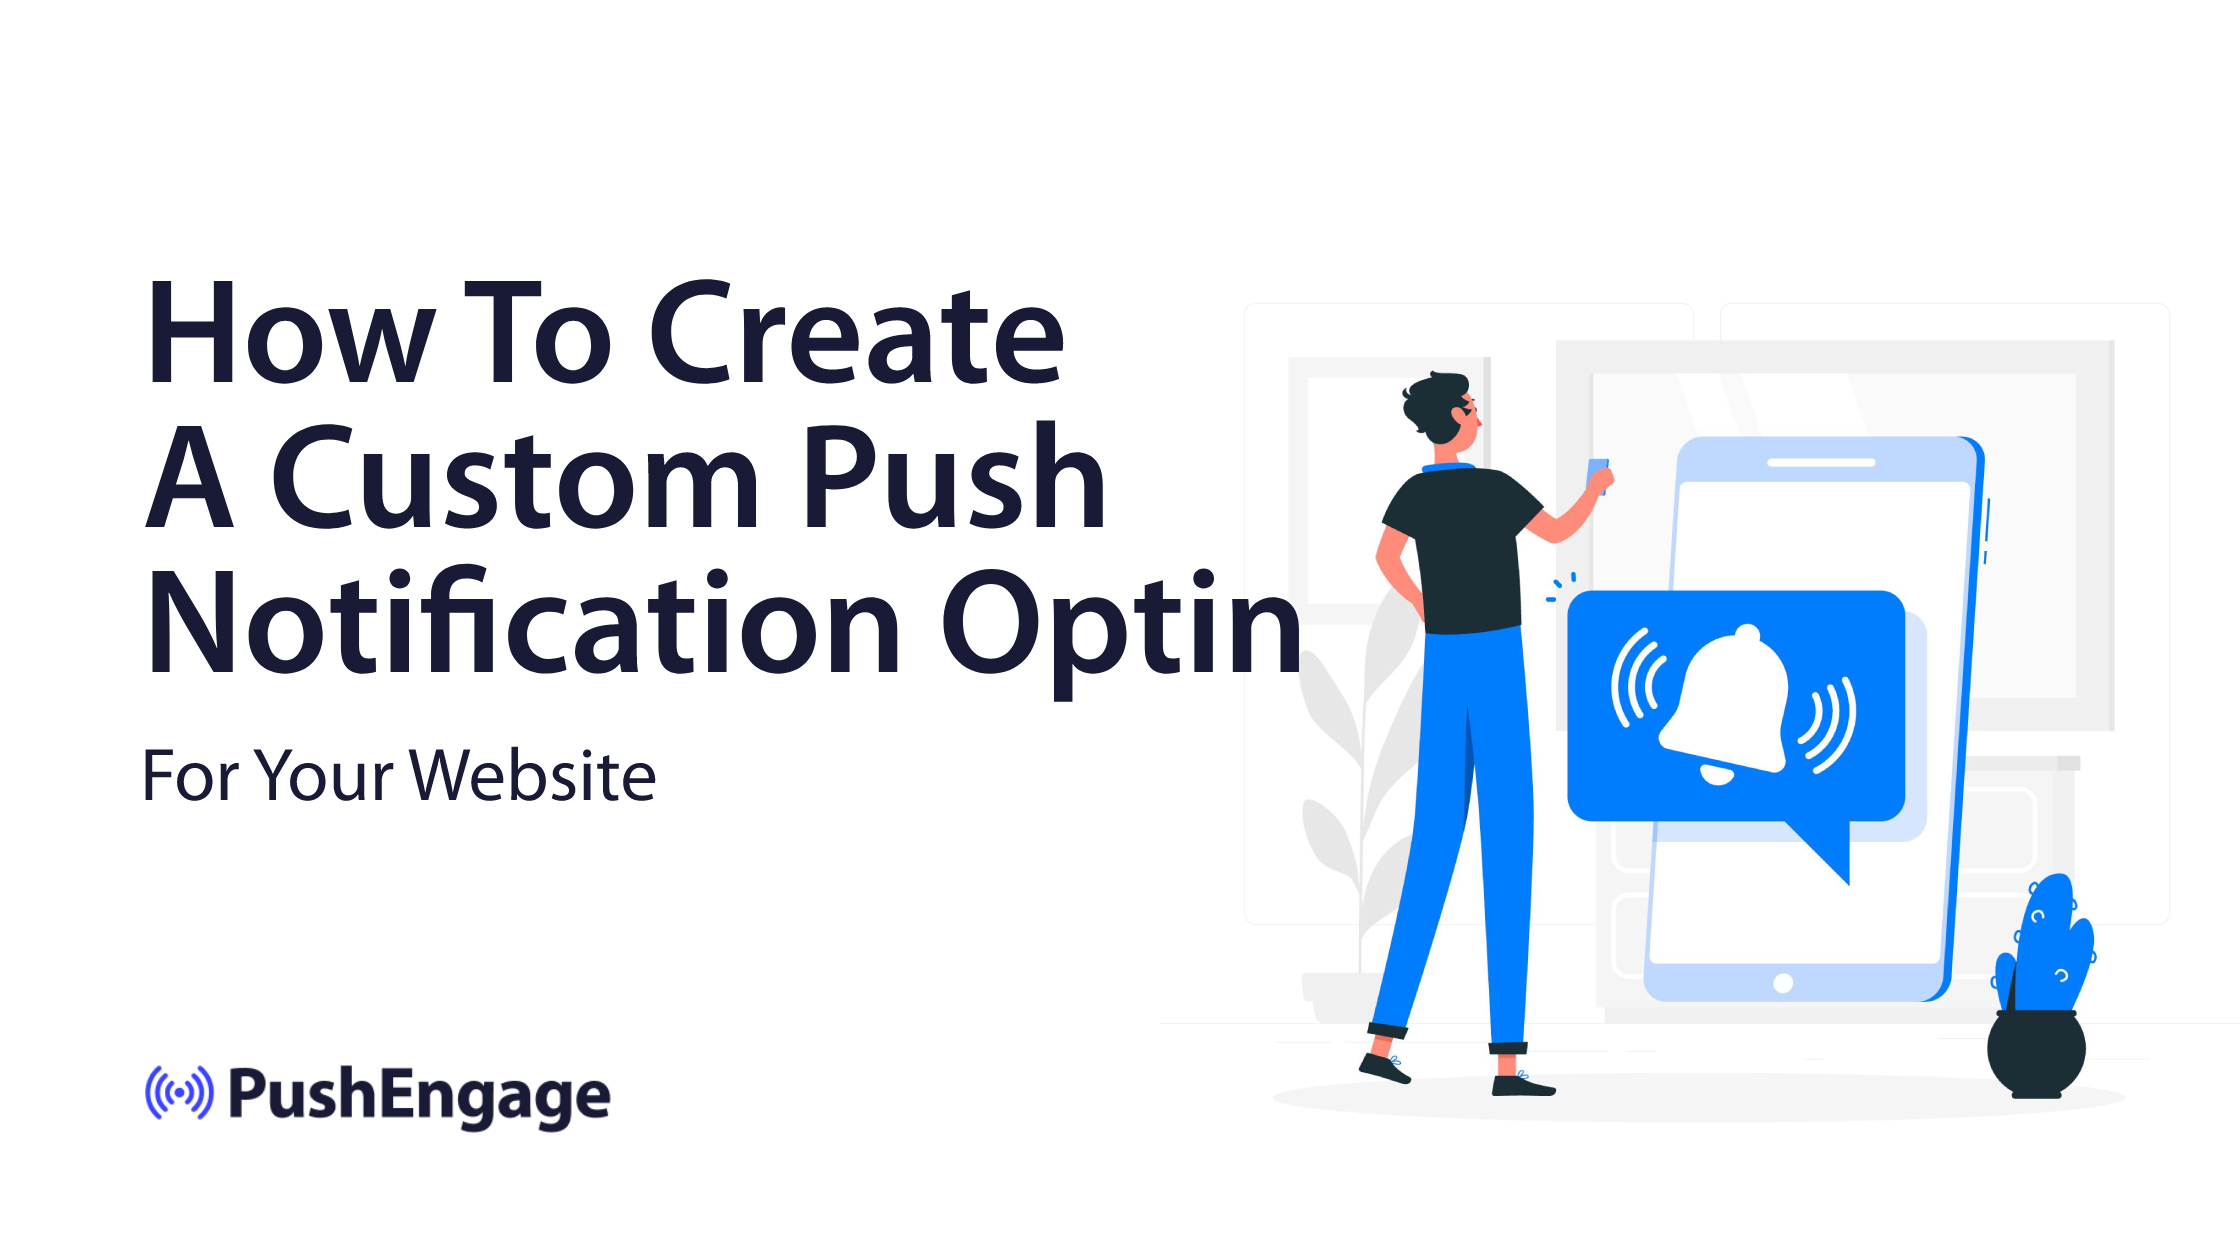 How To Create A Custom Push Notification Optin For A Website?